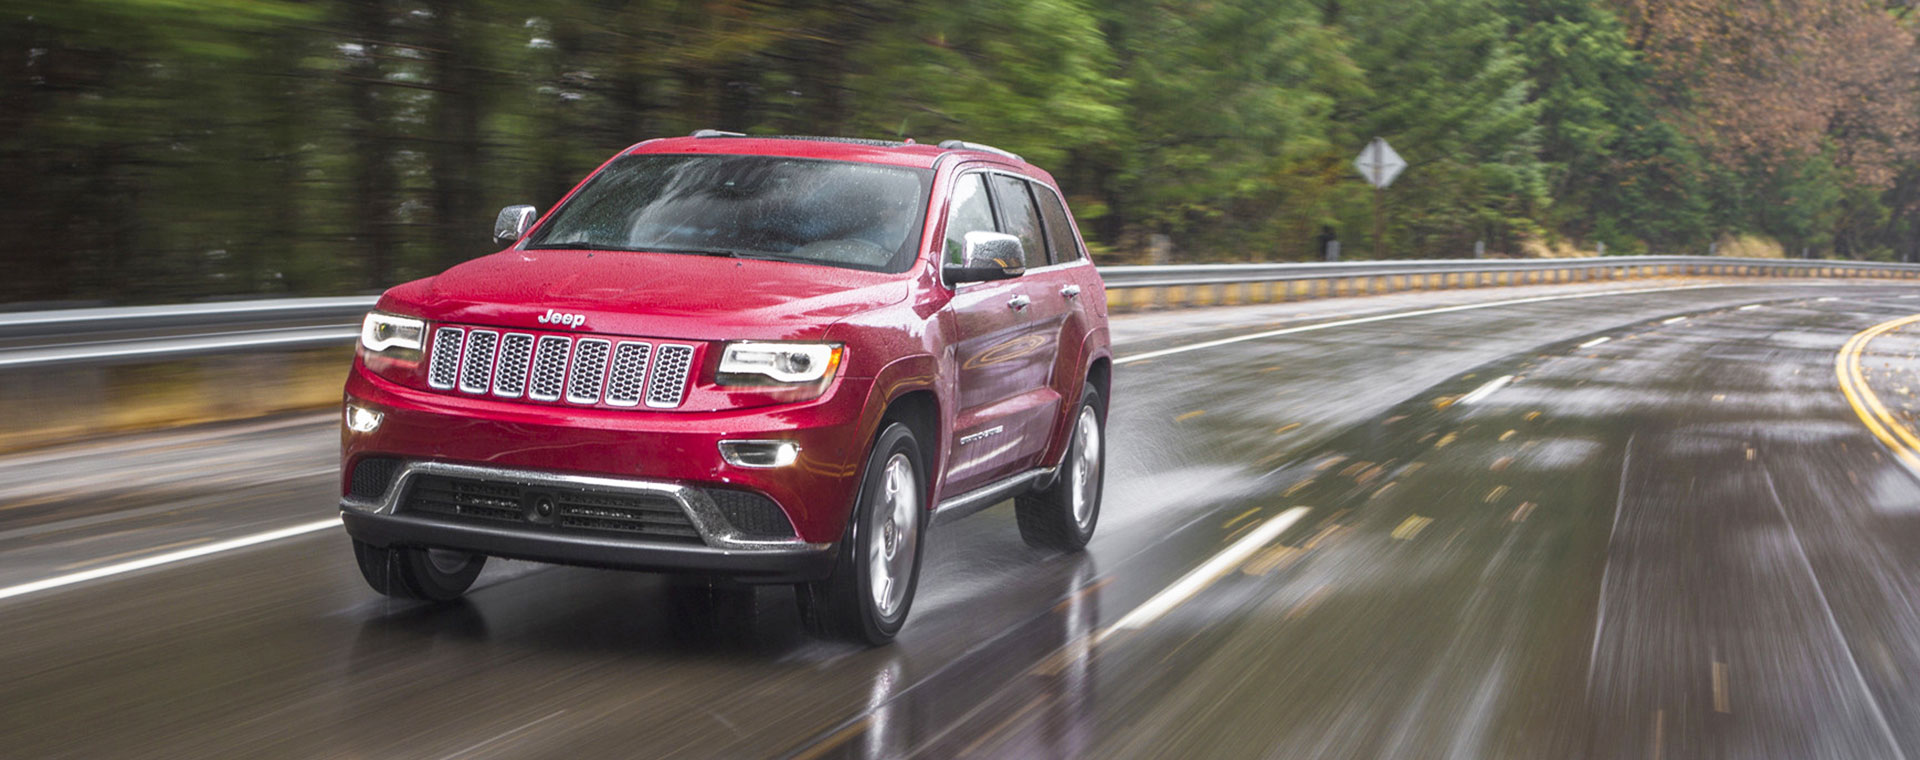 New Grand Cherokee inventory at Quirk Chrysler Jeep